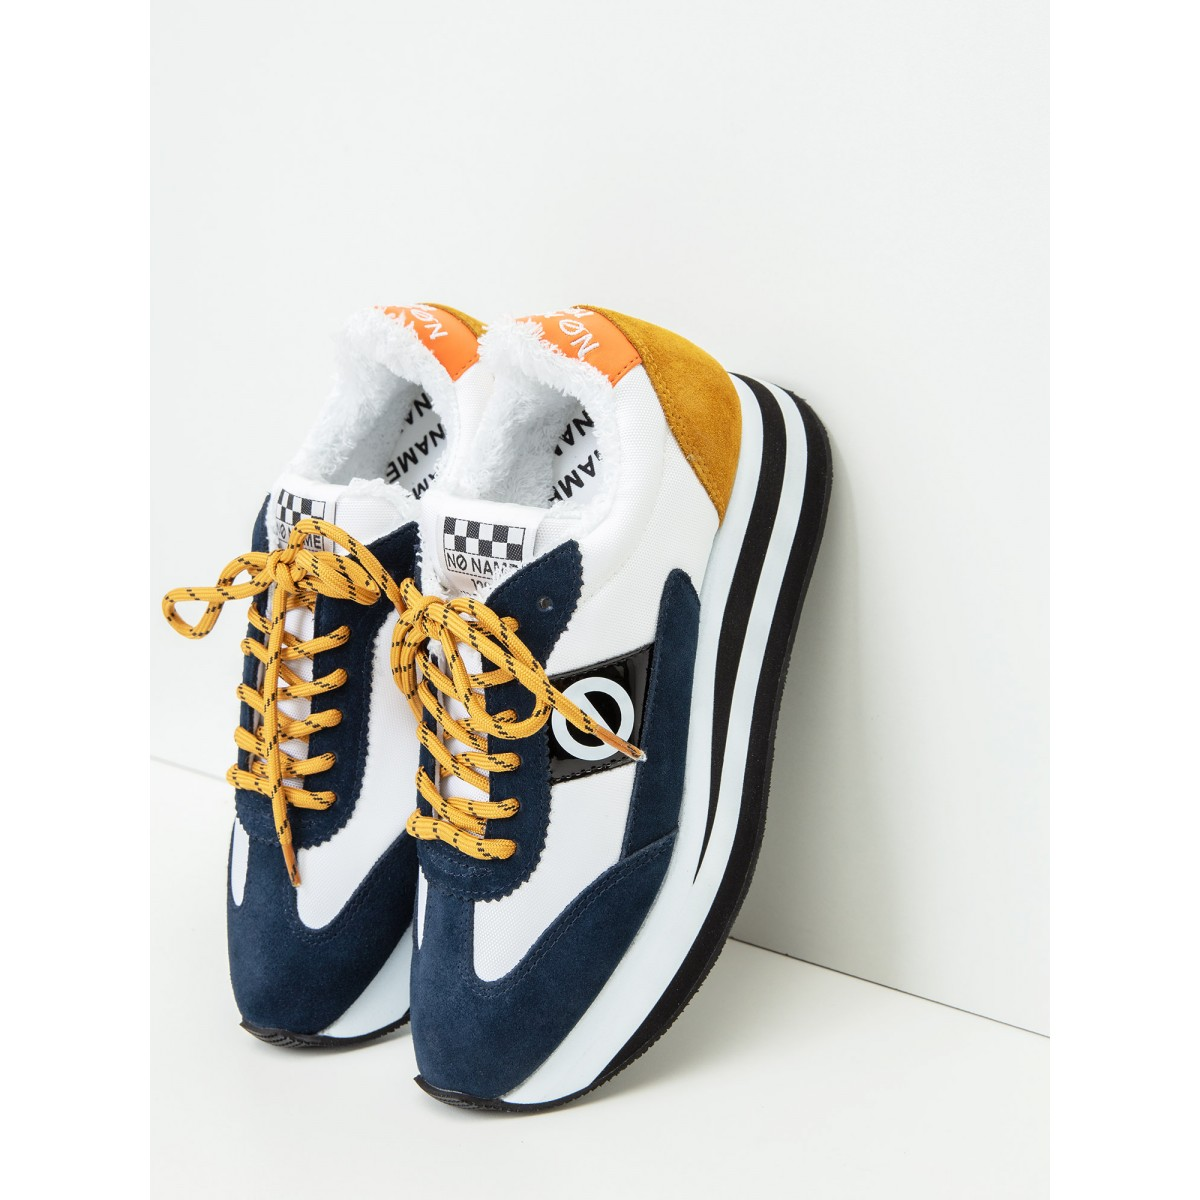 No Name Flex Jogger - Suede/Nylon - Navy/White